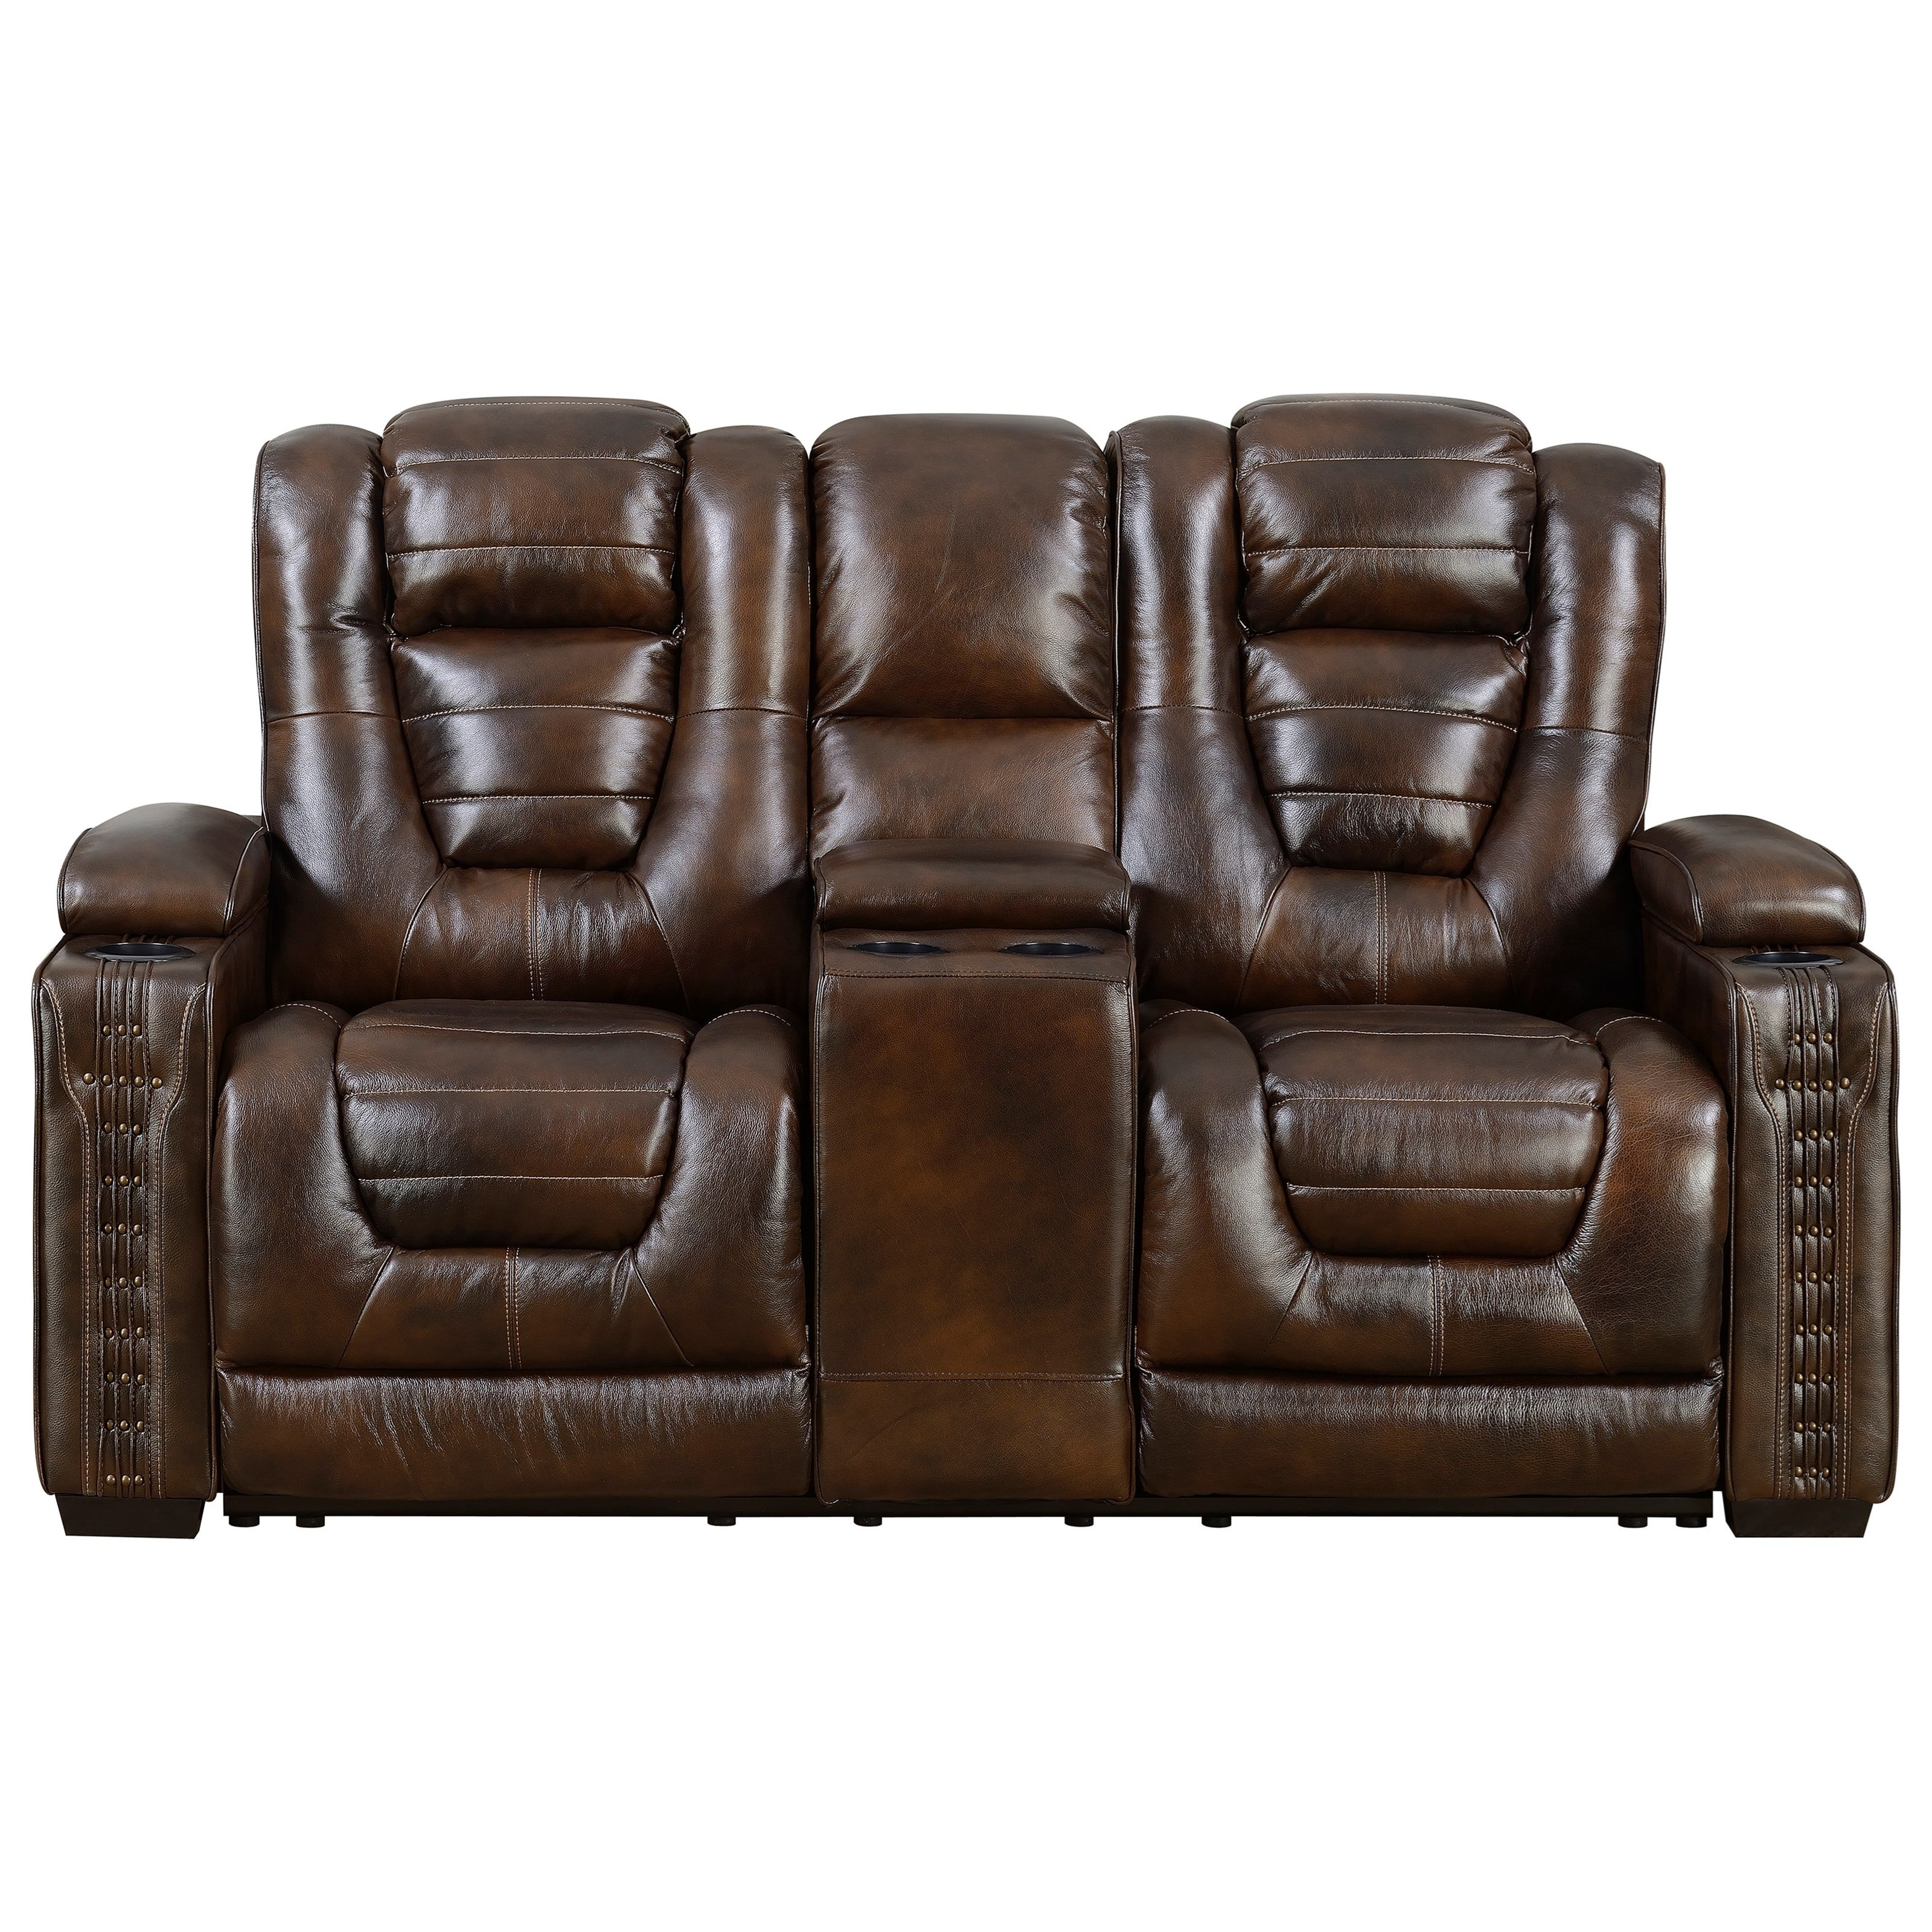 Big Chief Power Reclining Loveseat by Prime Resources International at Dream Home Interiors